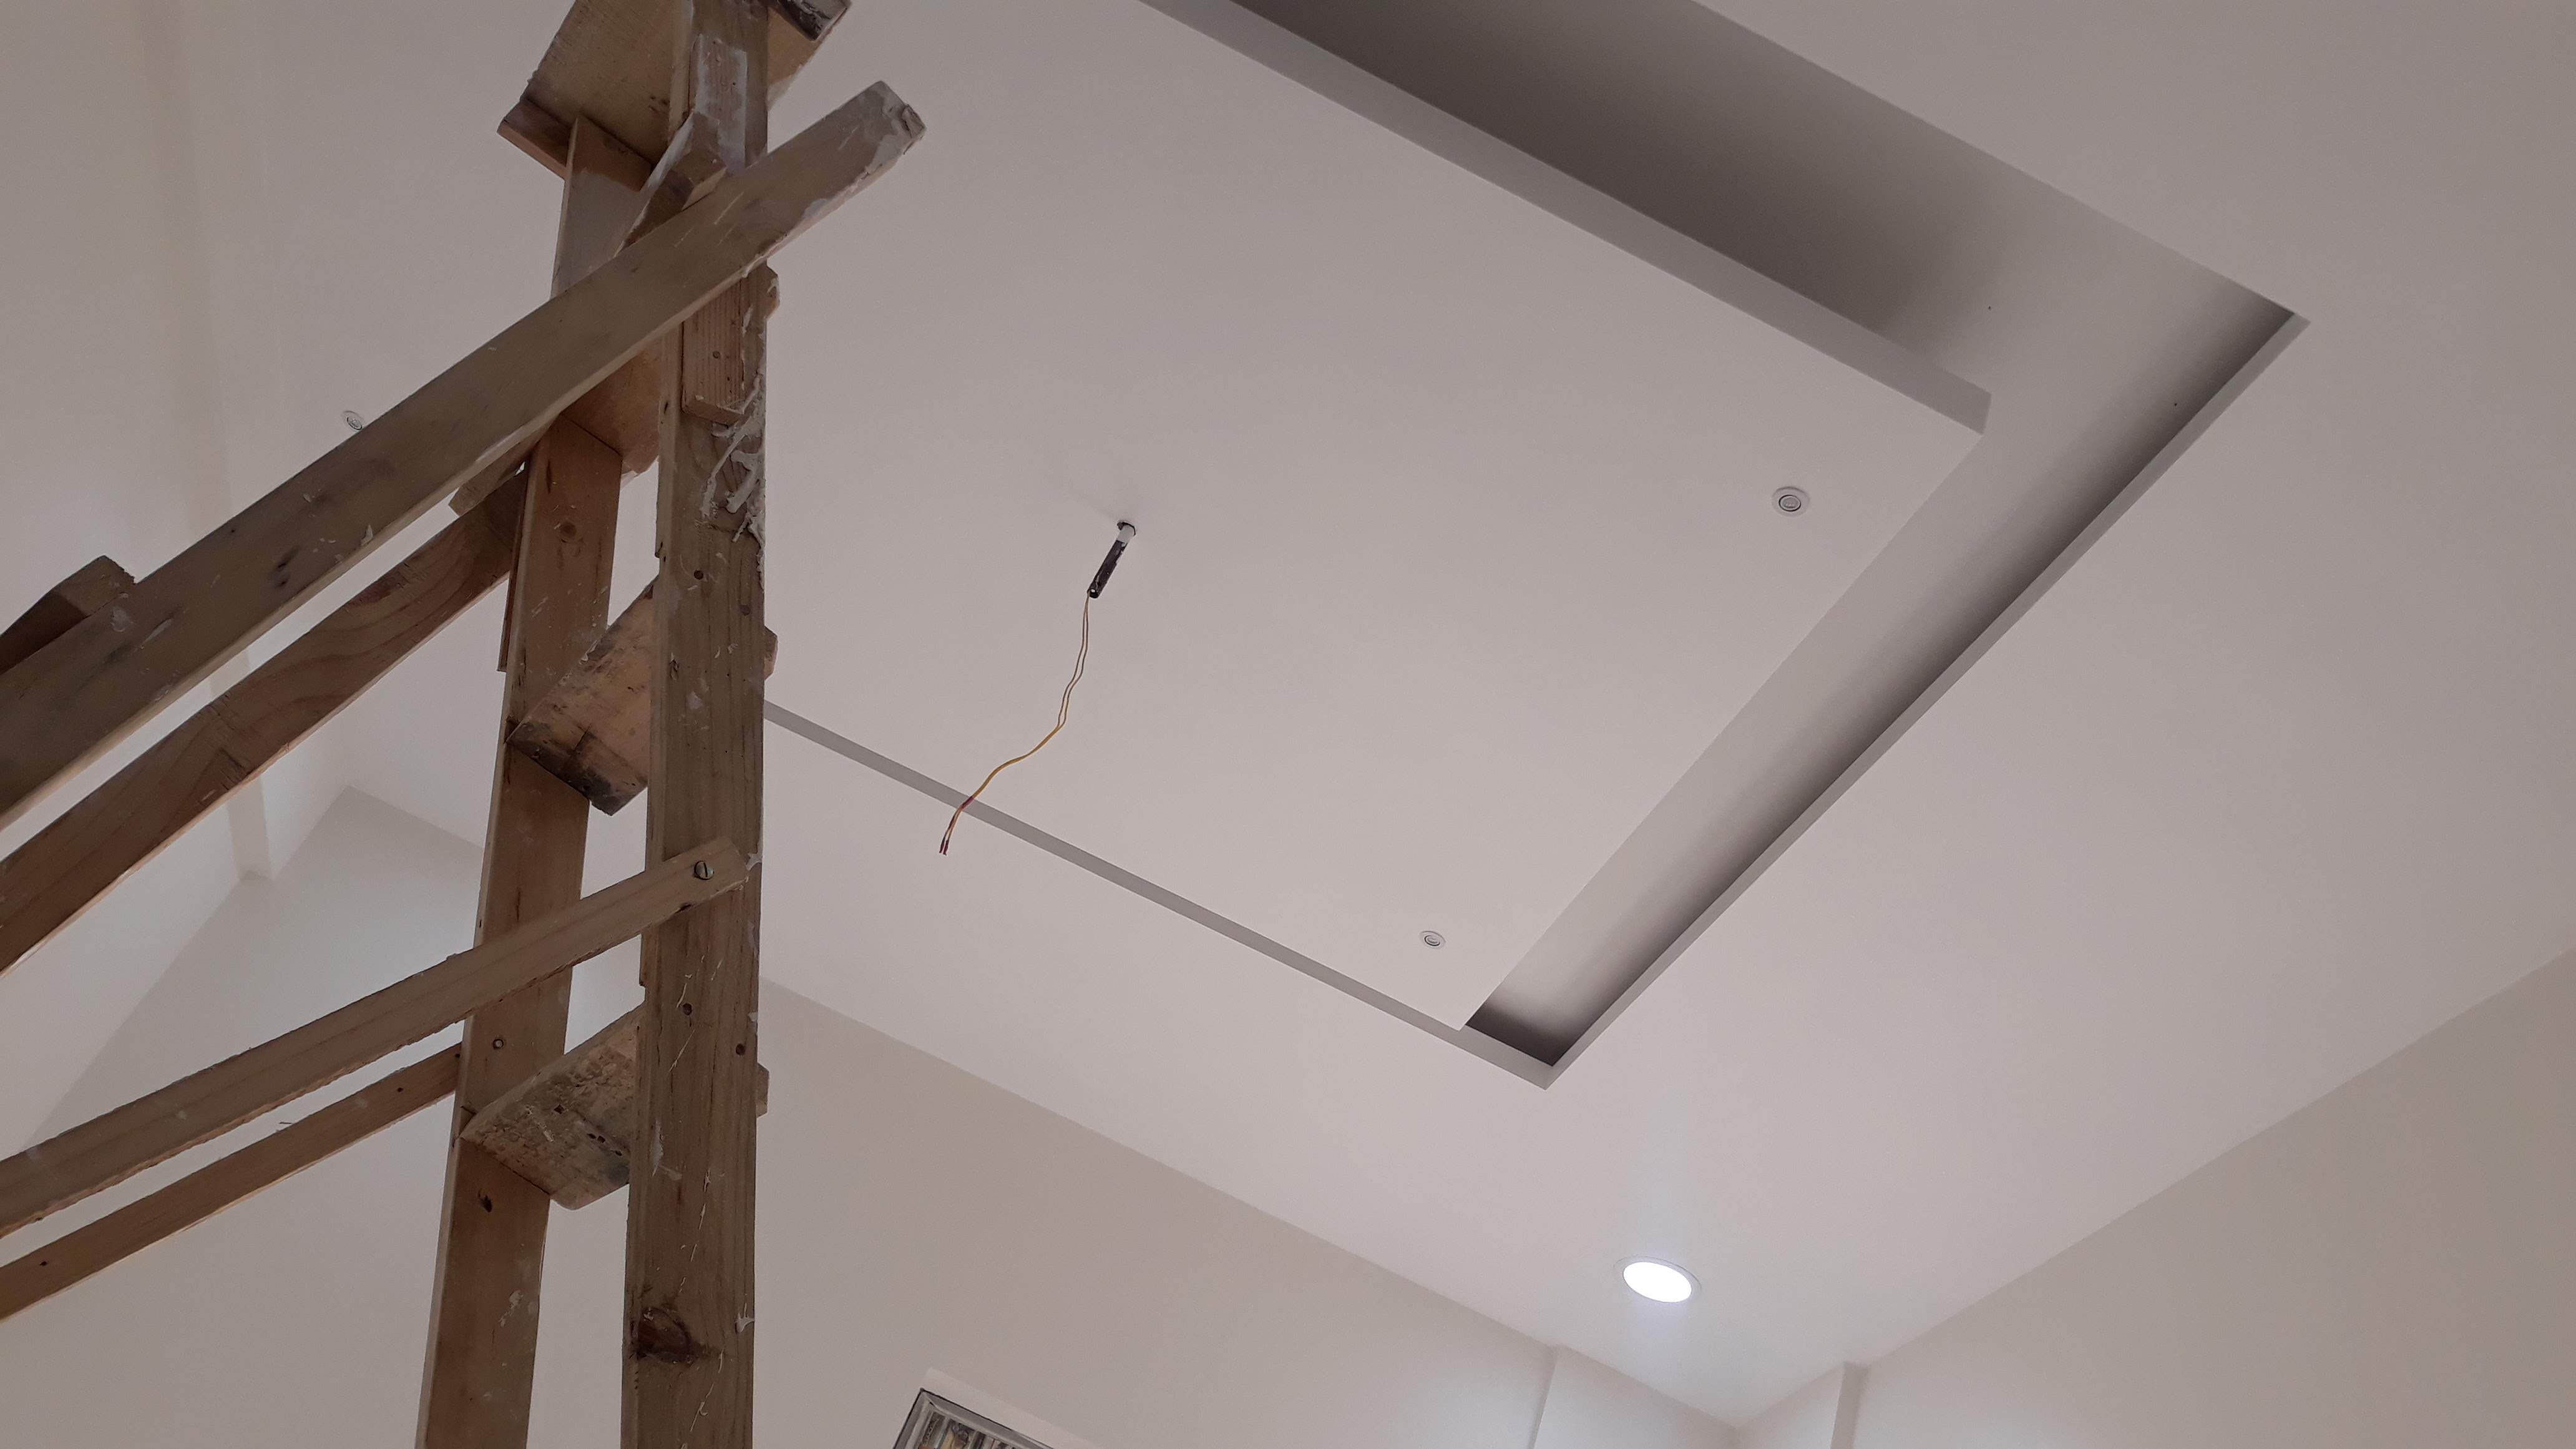 drywall gypsum bod false ceiling , false ceiling , roof ceiling design , gypsum bod false ceiling design , heat prove false ceiling design,